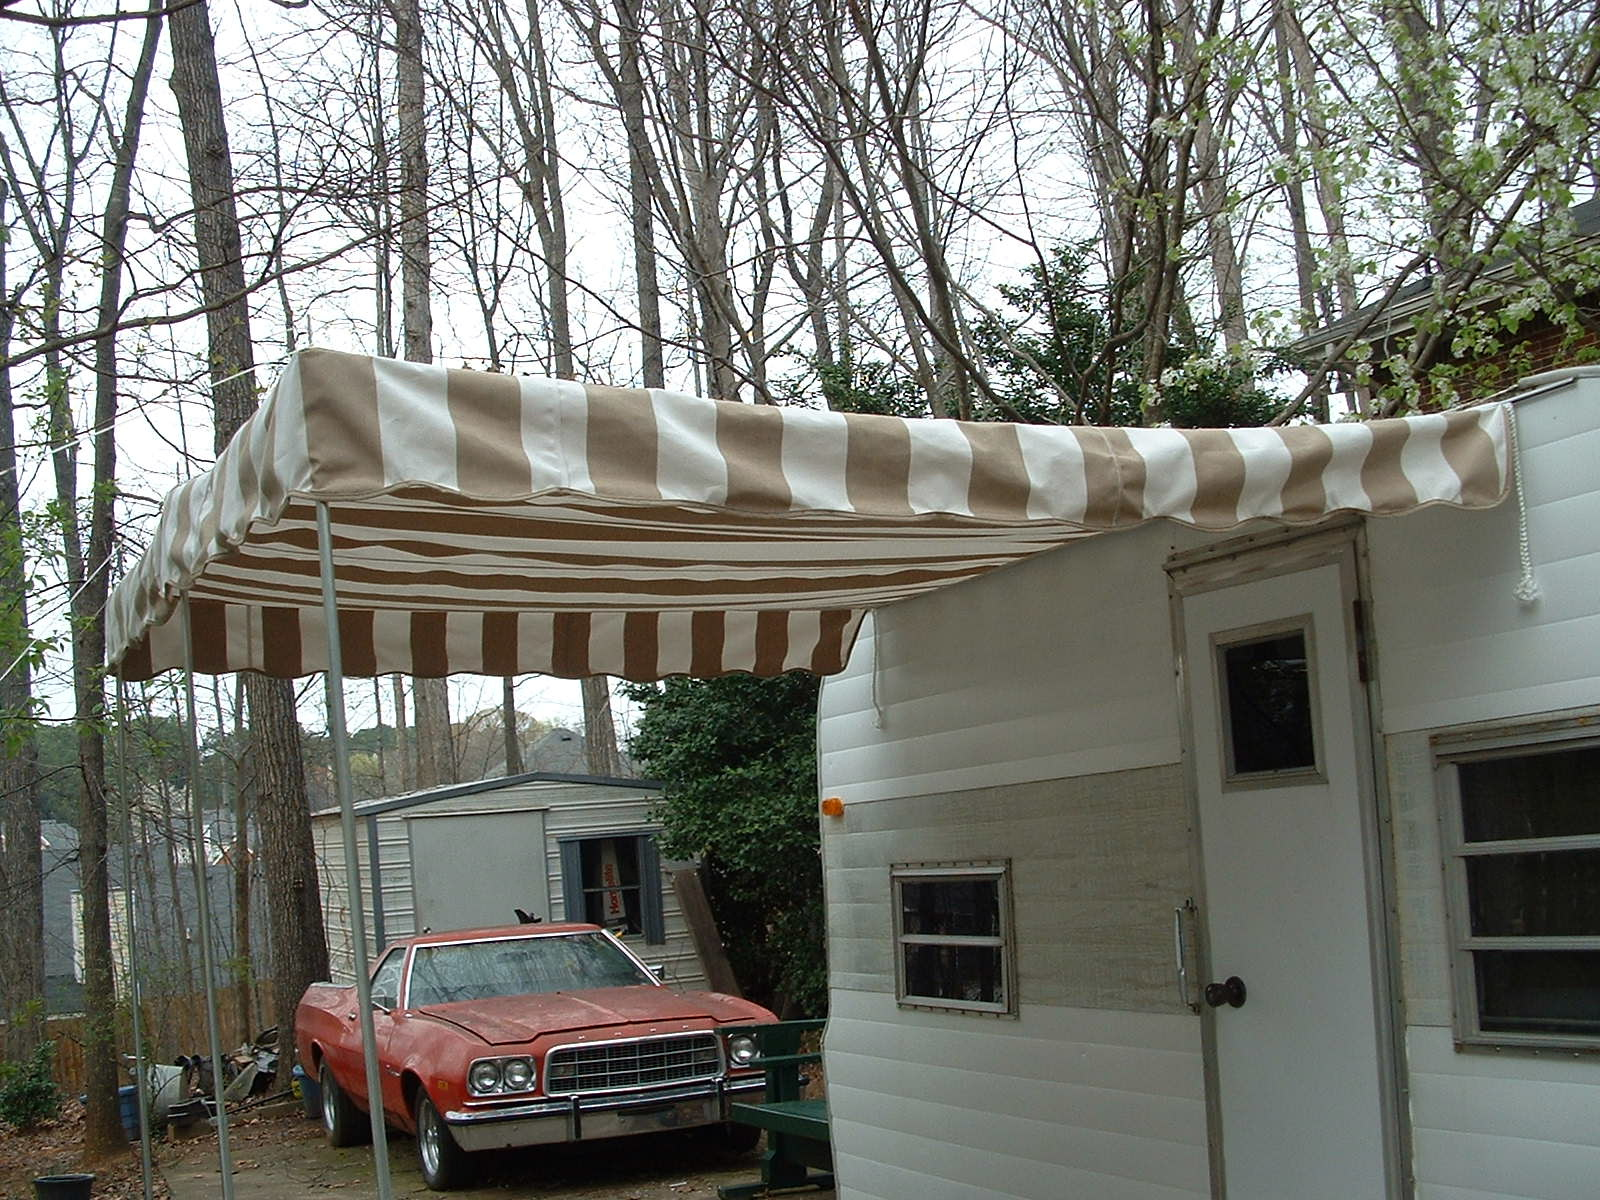 Click image for larger version  Name:awning #5.JPG Views:80 Size:748.3 KB ID:67506